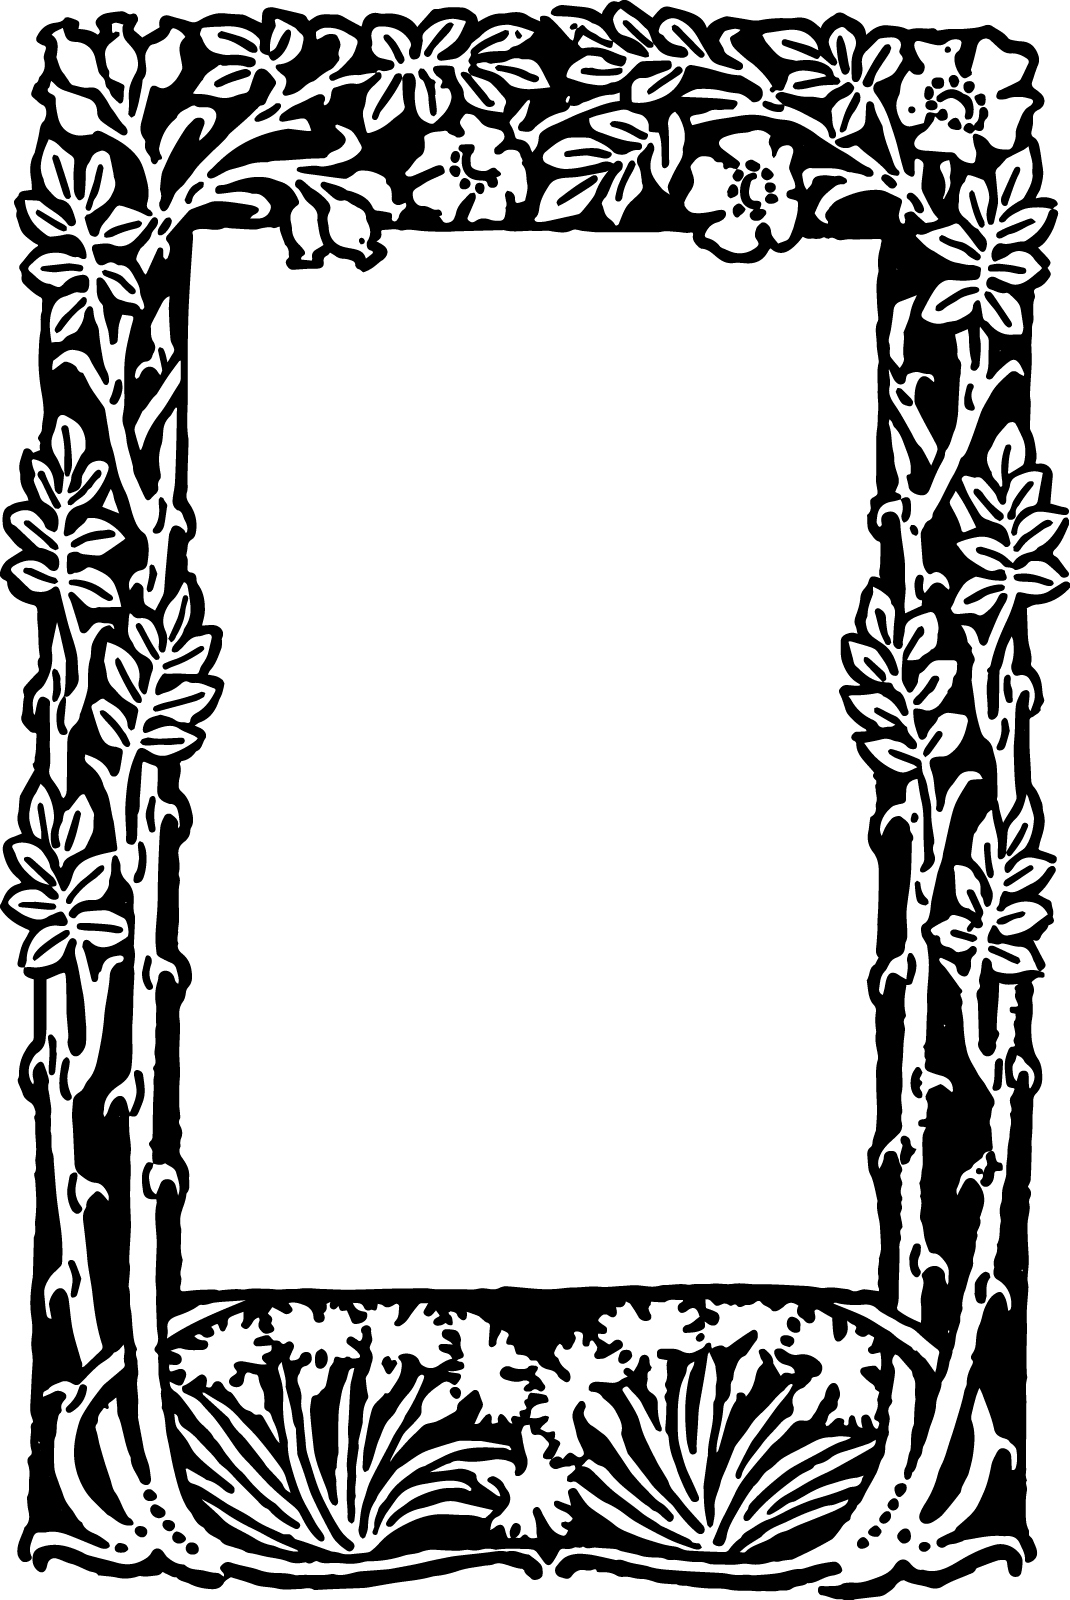 Free Free Printable Floral Borders And Frames, Download Free Clip - Free Printable Borders And Frames